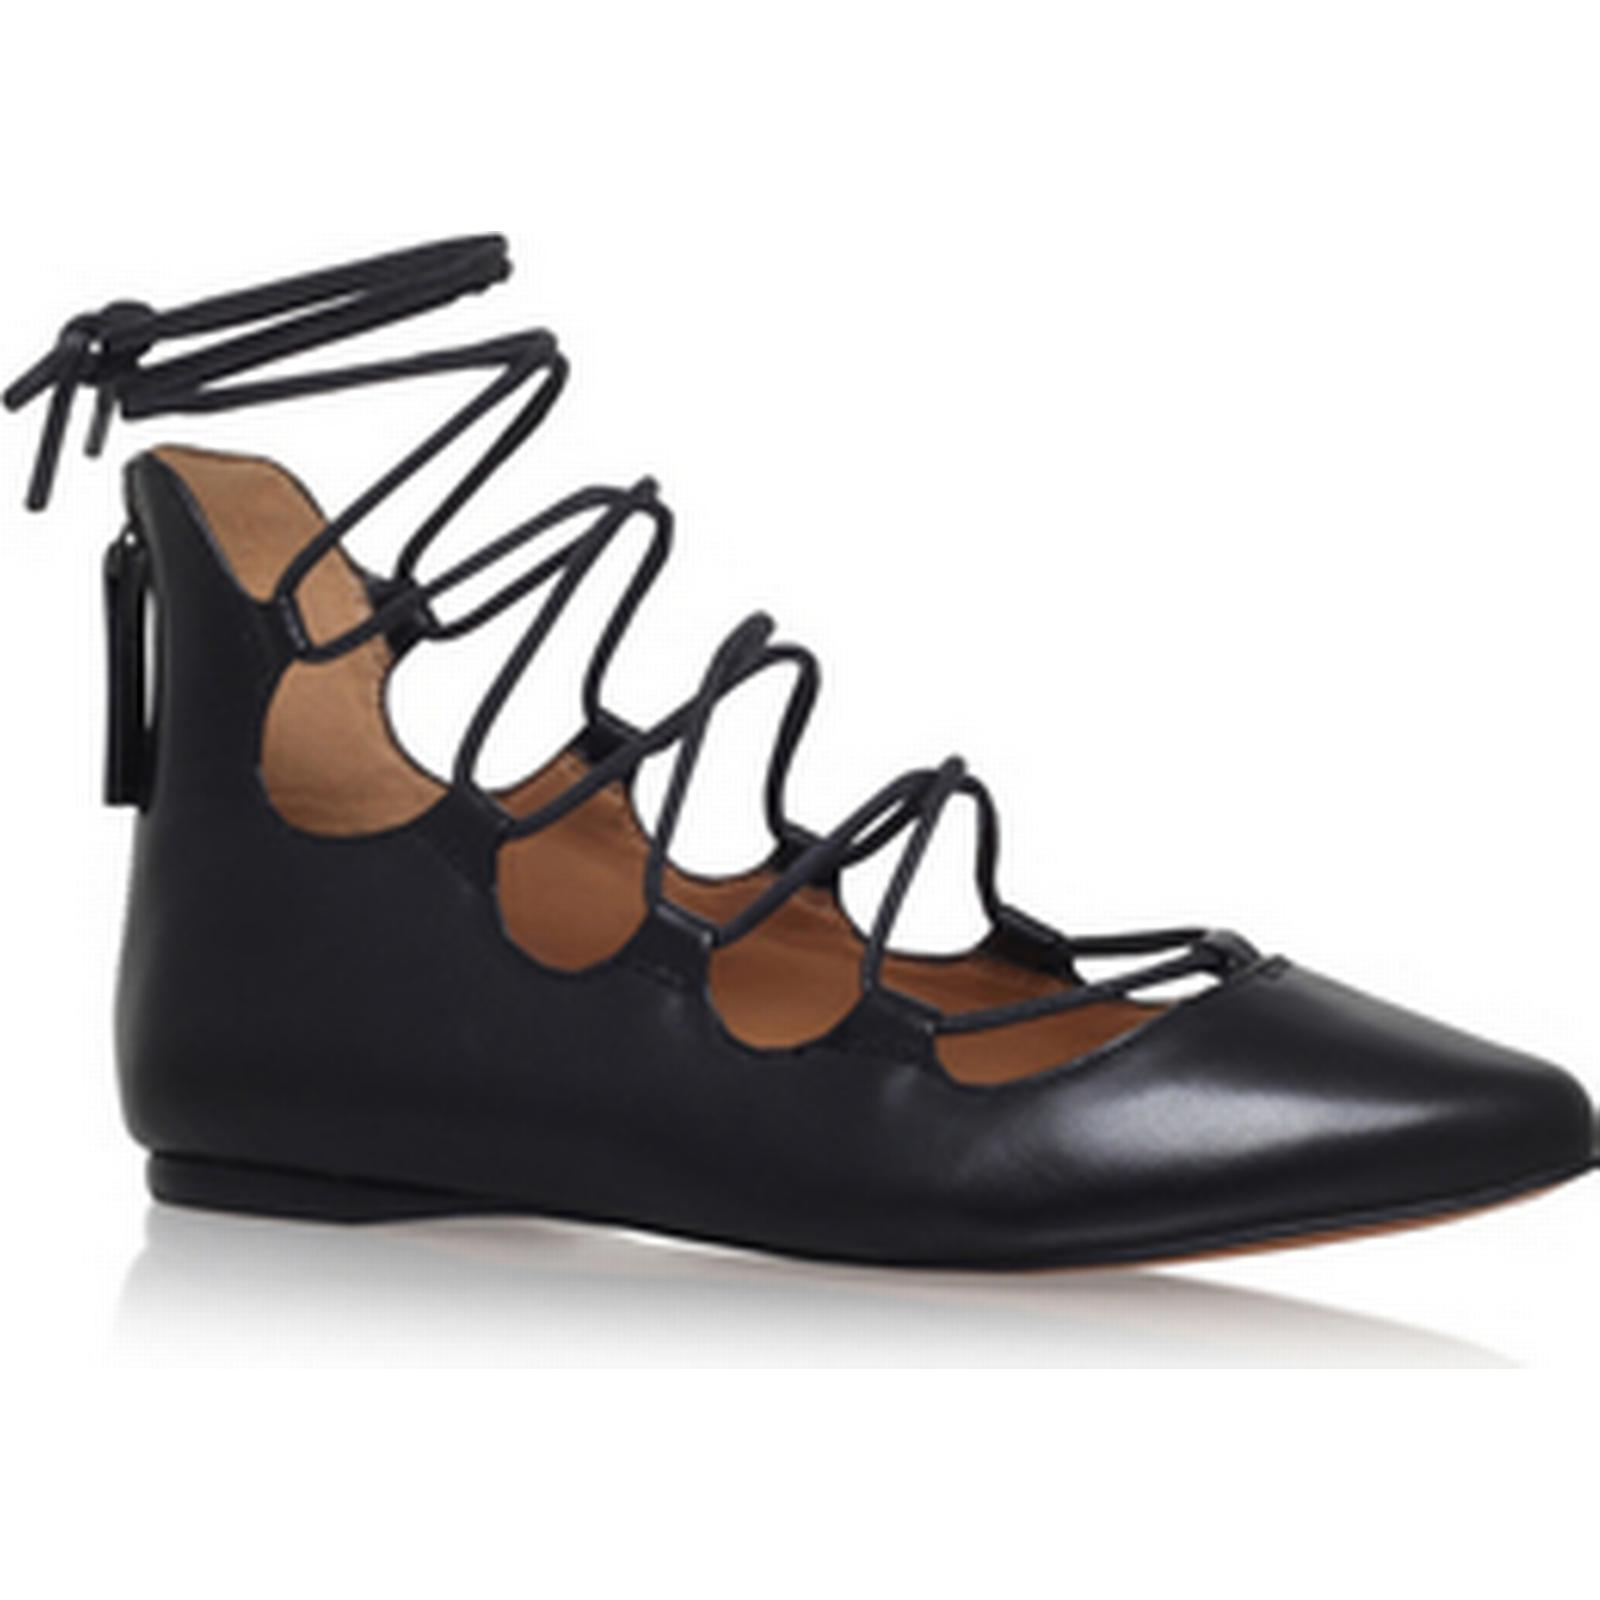 Man's/Woman's:NINE WEST SIGNMEUP9:Be Roman Roman SIGNMEUP9:Be in Design 17ece5